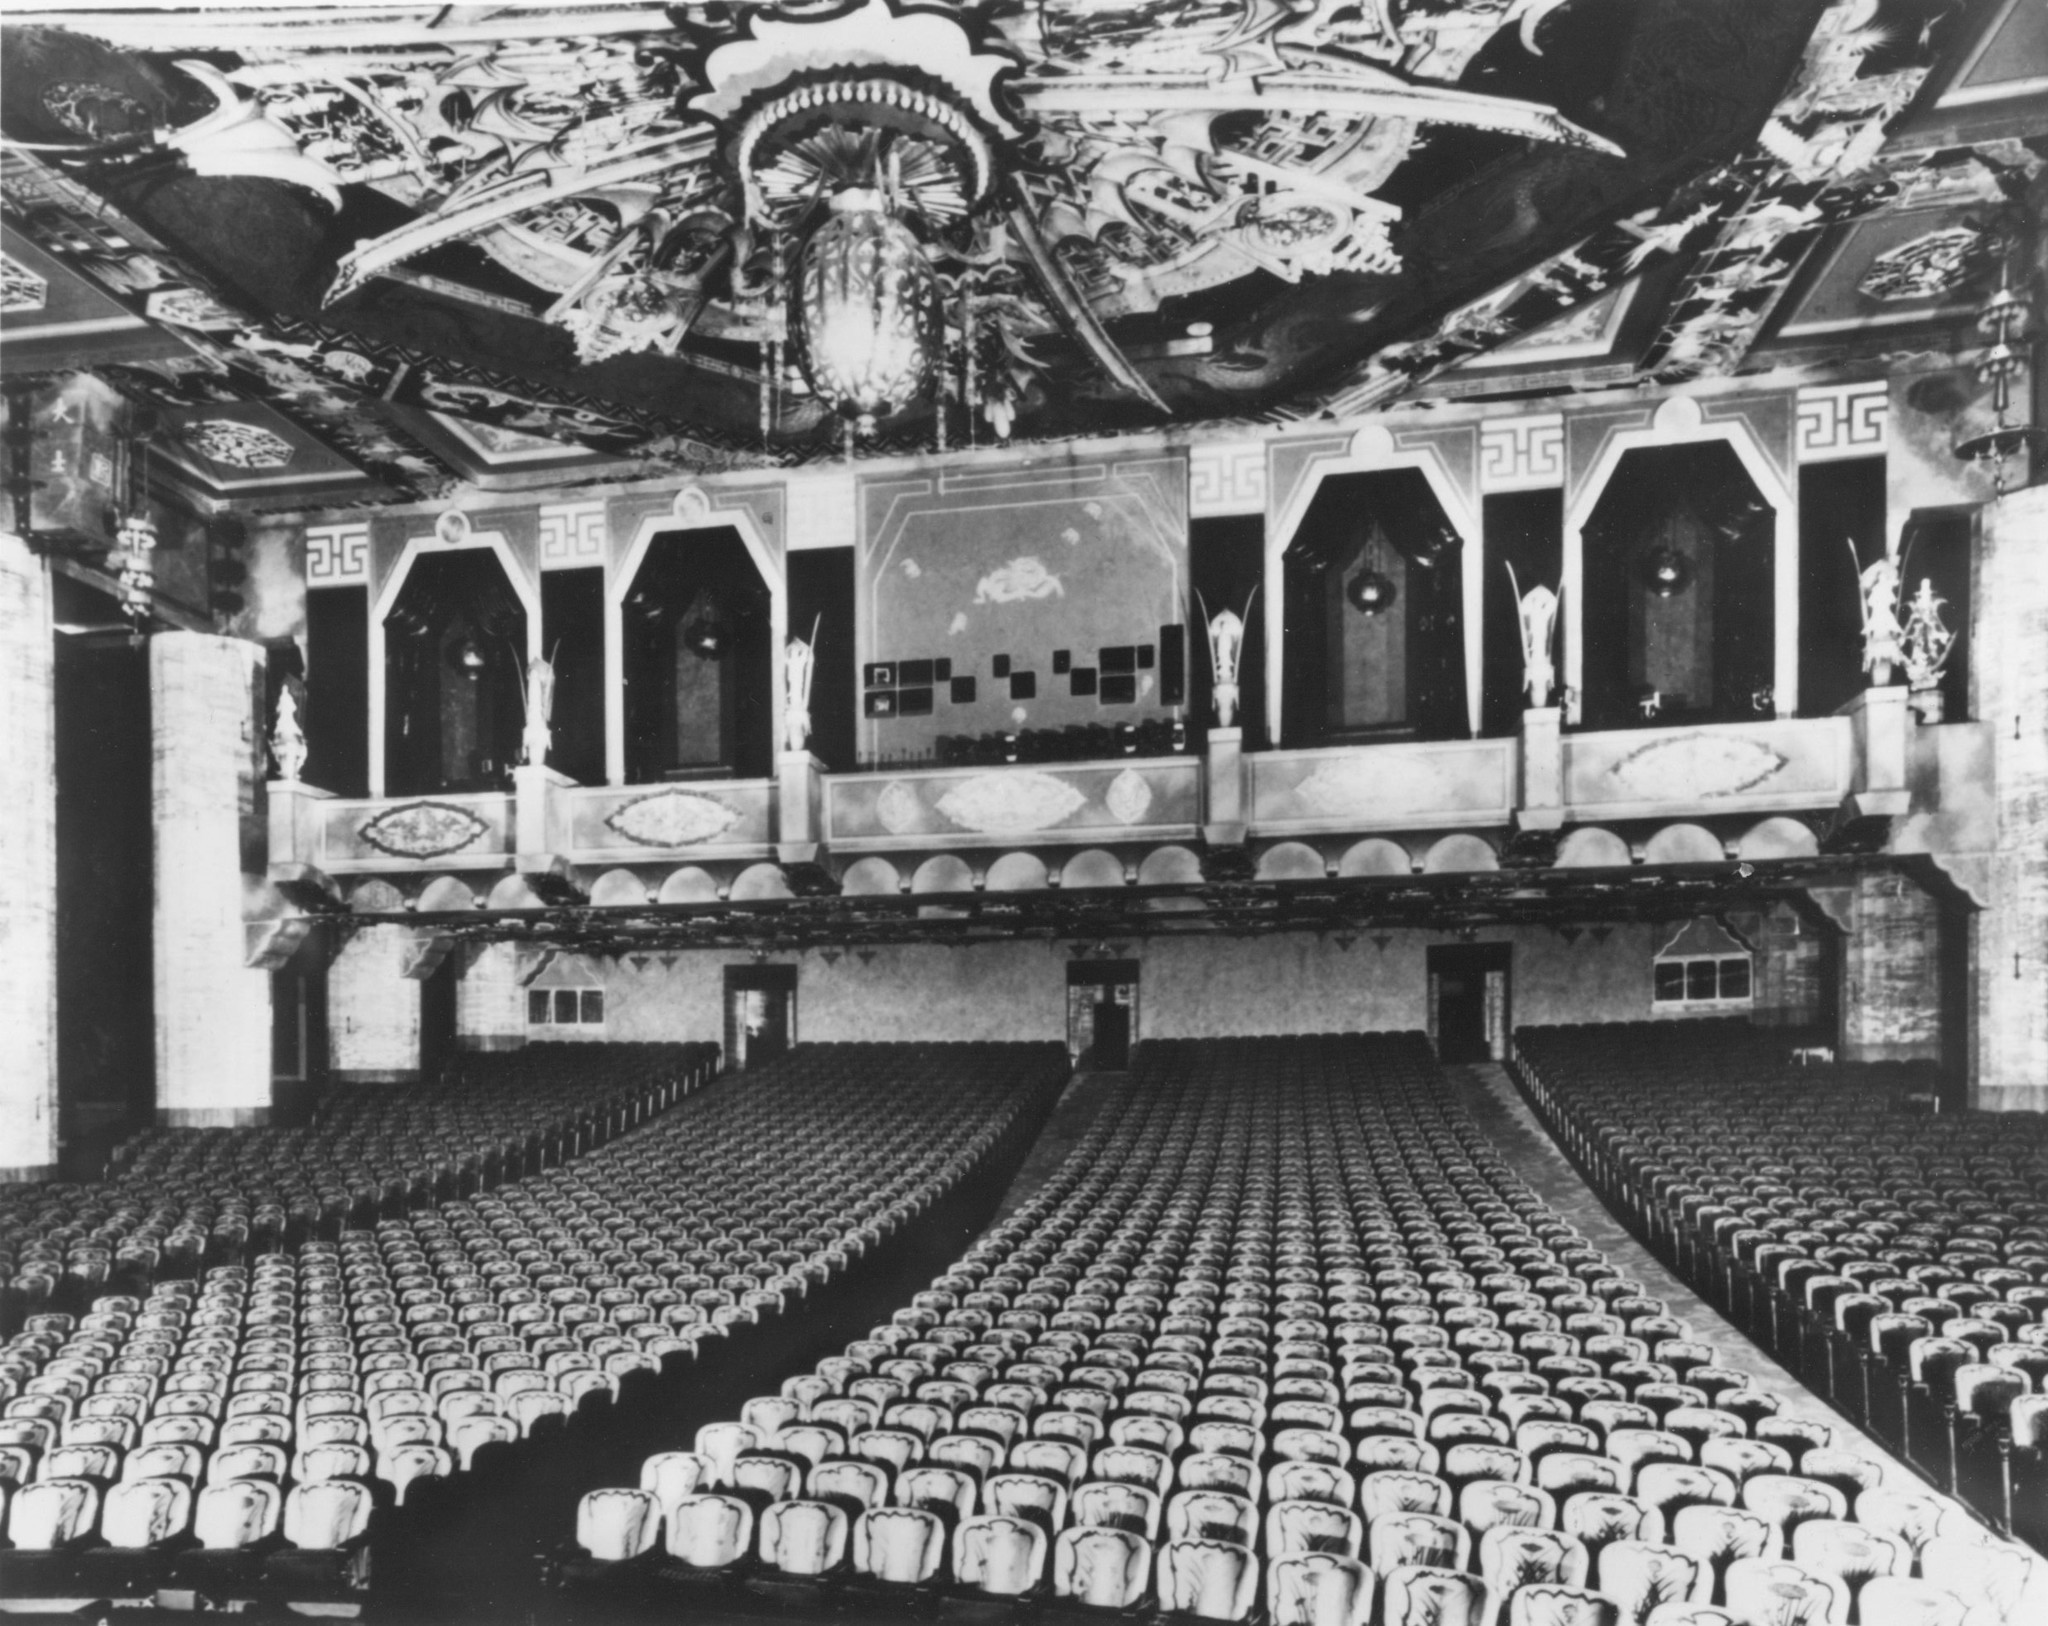 A vintage shot of the inside the Chinese-themed movie palace that Sid Grauman built.